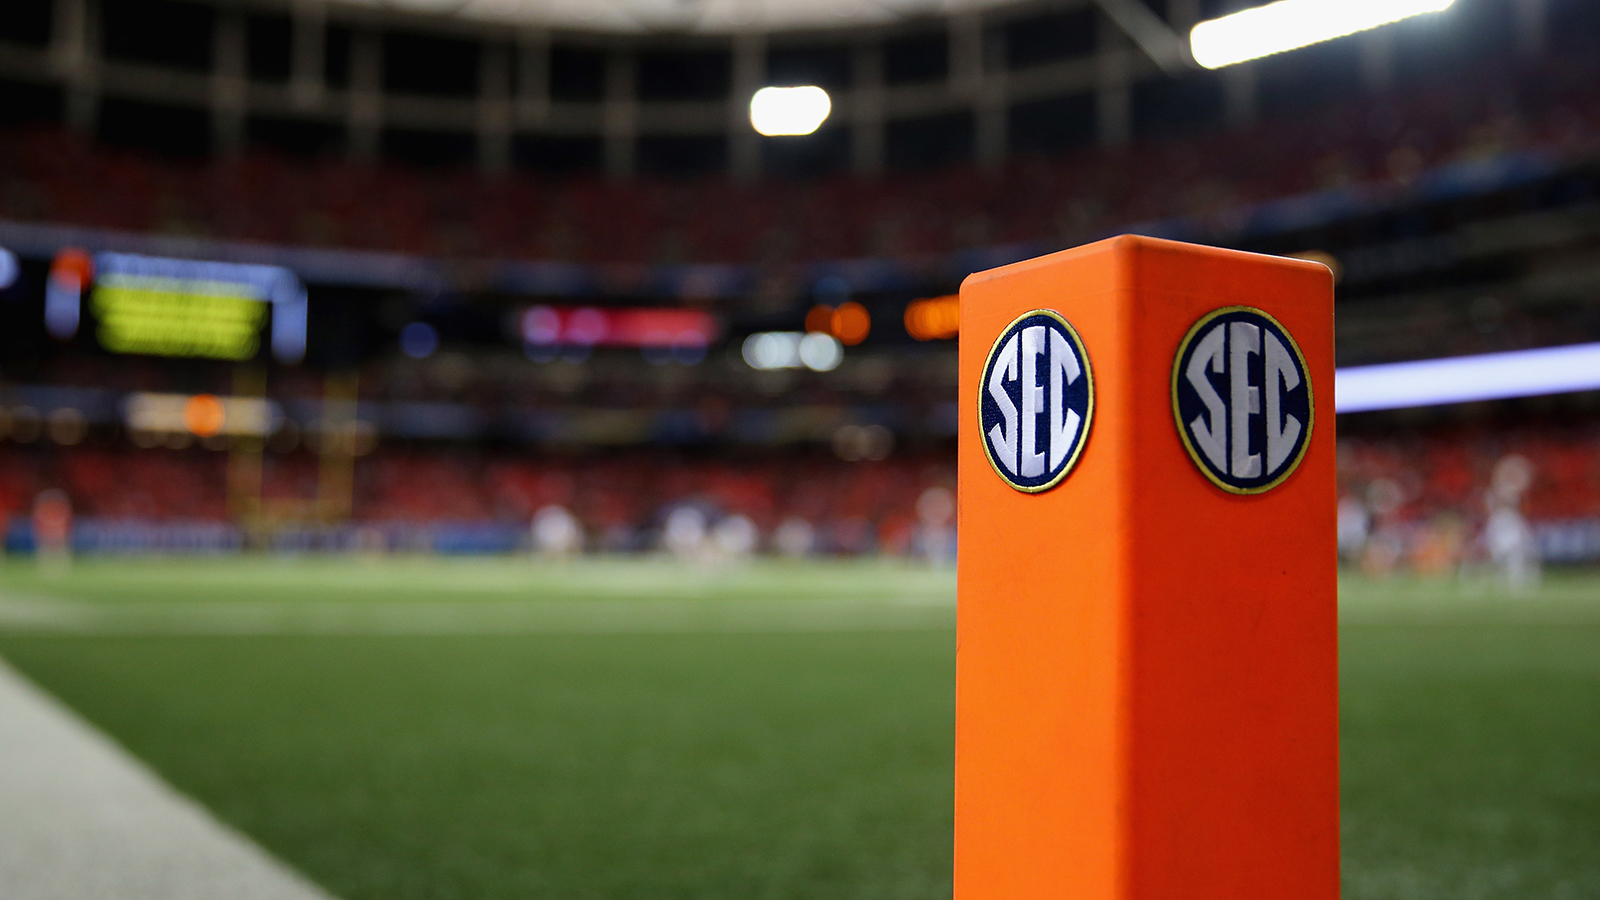 An 'SEC' logo is seen on an end zone pylon before the Missouri Tigers take on the Auburn Tigers during the SEC Championship Game at Georgia Dome on December 7, 2013 in Atlanta, Georgia.